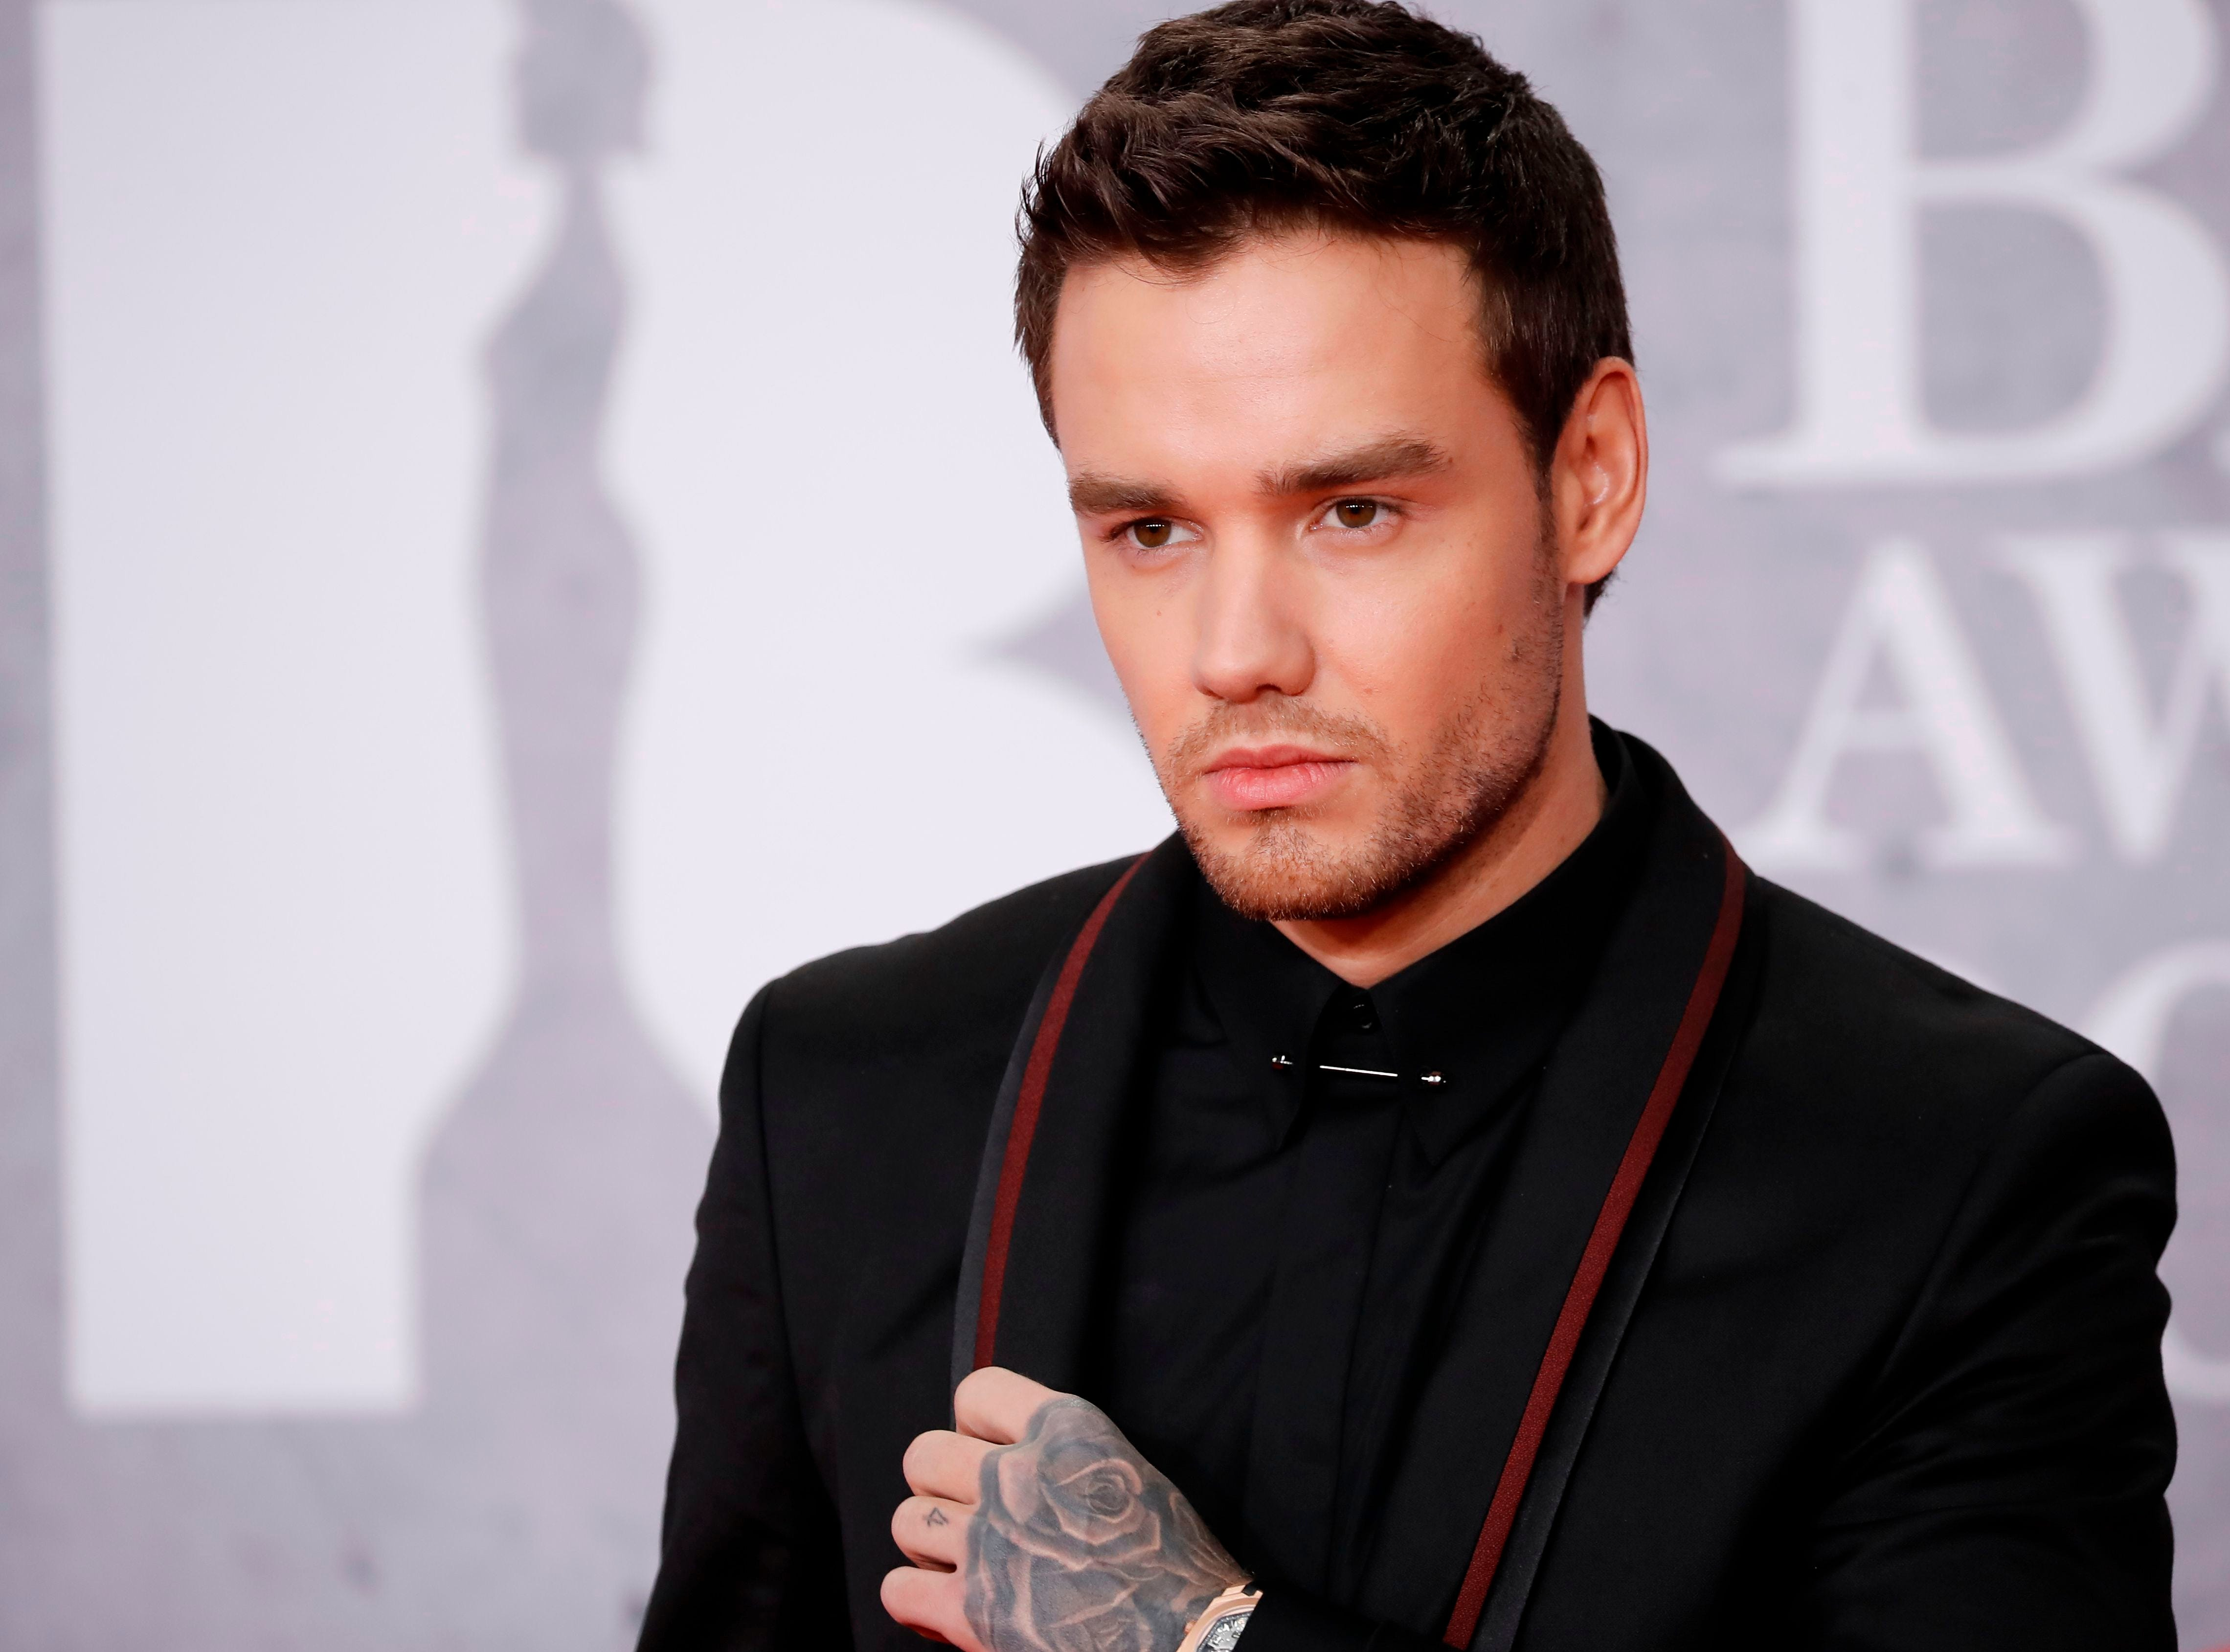 Liam British singer-songwriter Liam Payne poses on the red carpet on arrival for the BRIT Awards 2019 in London on February 20, 2019. (Photo by Tolga AKMEN / AFP) / RESTRICTED TO EDITORIAL USE  NO POSTERS  NO MERCHANDISE NO USE IN PUBLICATIONS DEVOTED TO ARTISTSTOLGA AKMEN/AFP/Getty Images ORIG FILE ID: AFP_1DO1PL